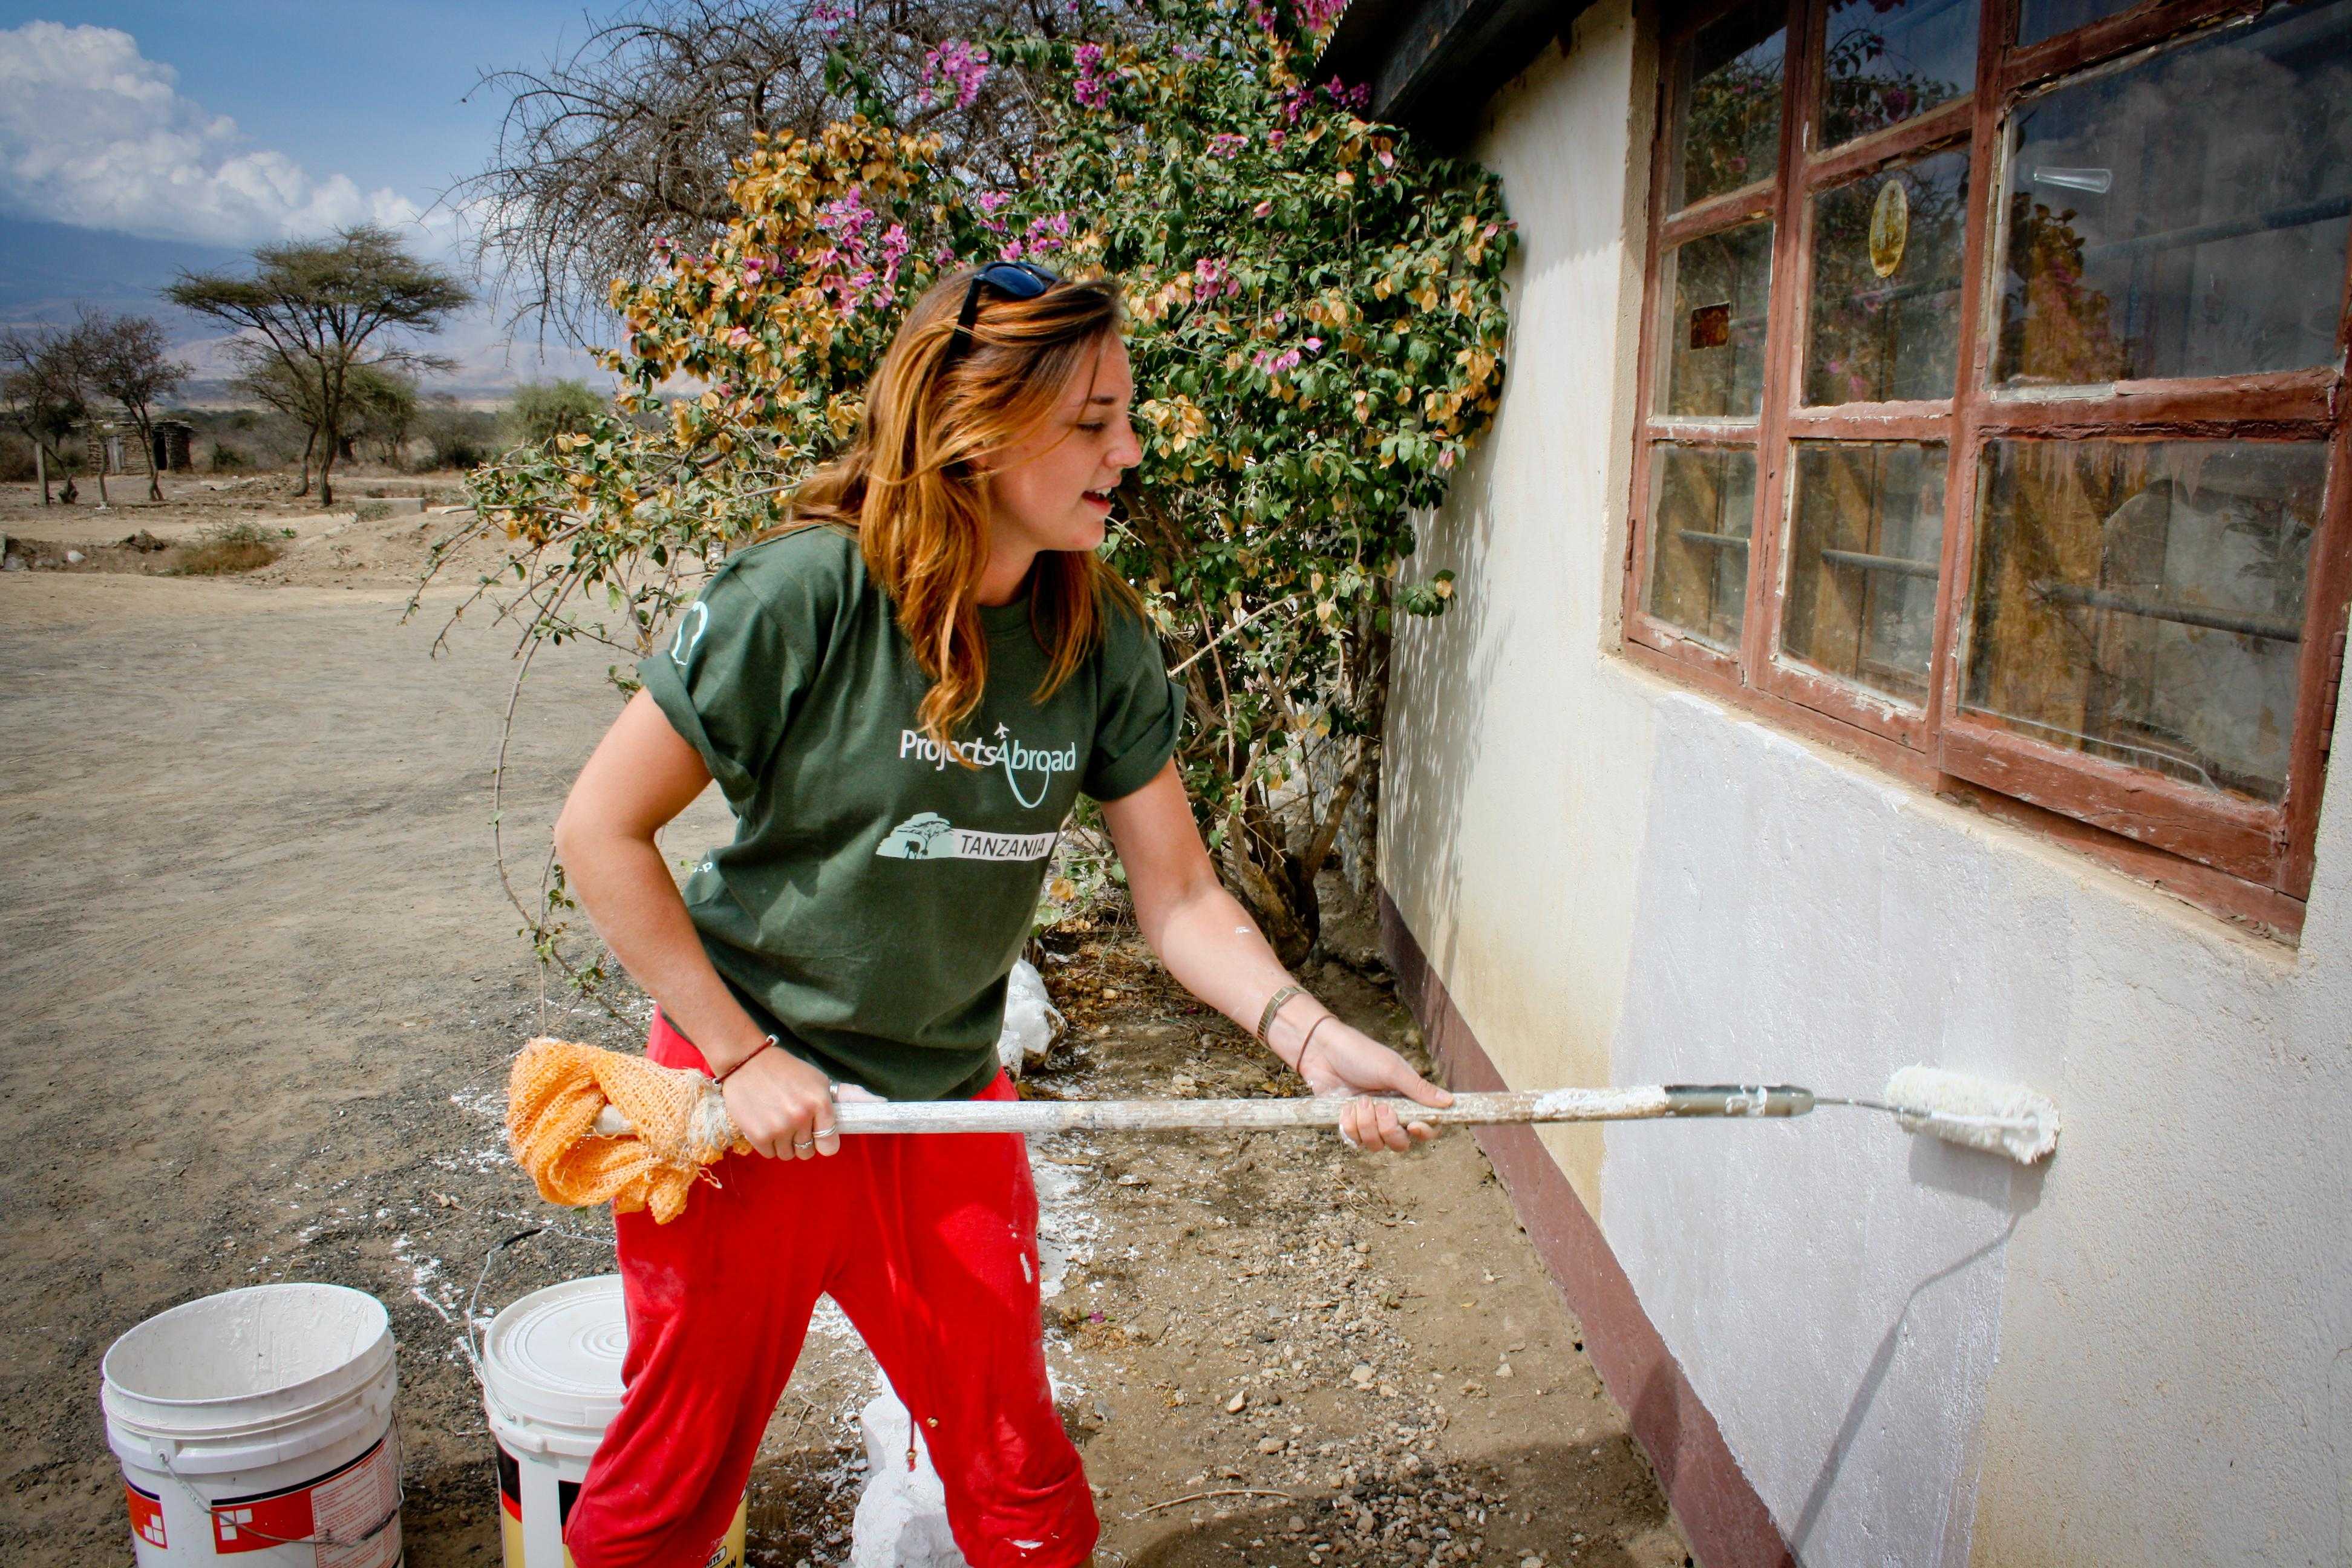 A teenage volunteer doing construction work in Tanzania paints a wall white.